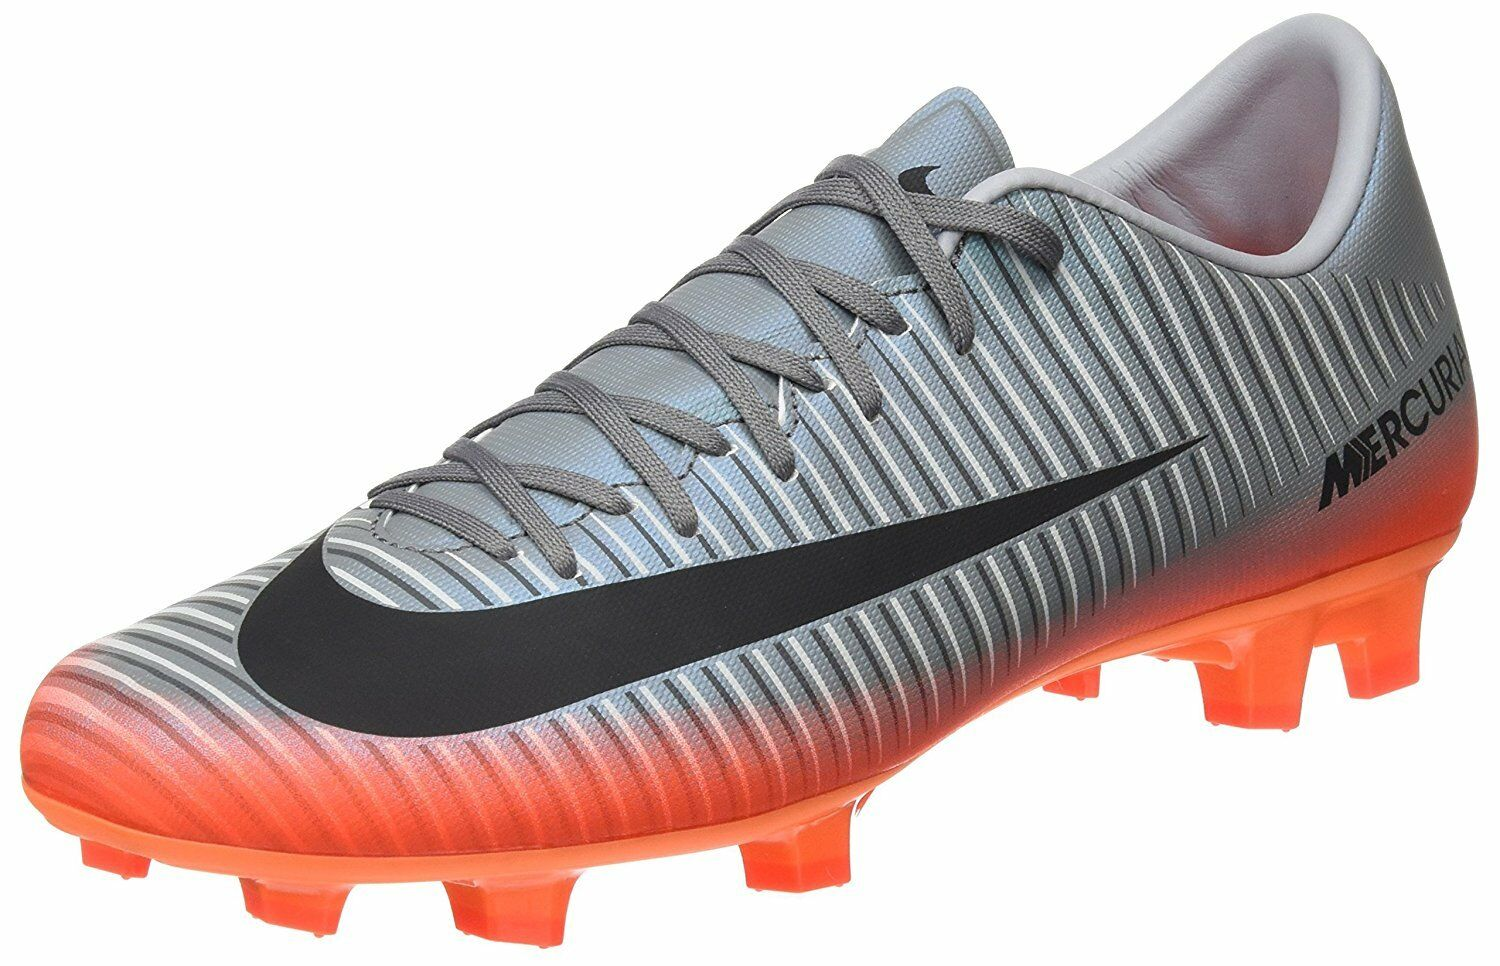 Nike Mercurial VICTORY VI CR7 FG Men's Soccer Cleats Cleats Cleats 852528-001 72e270